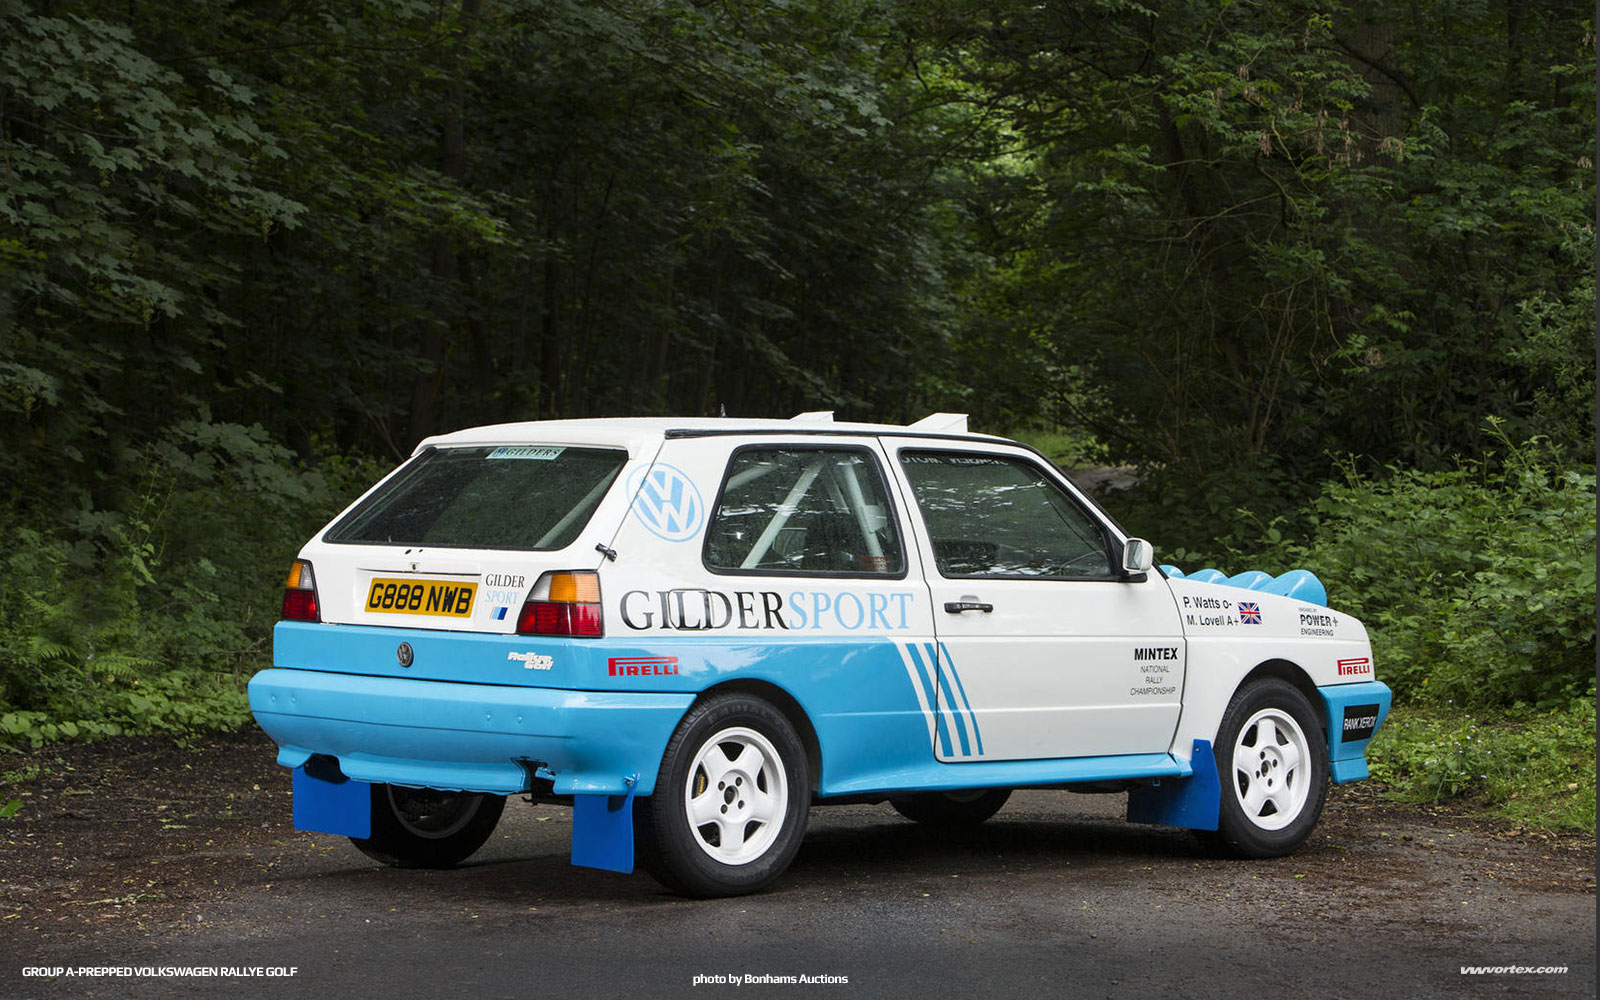 Volkswagen-Rallye-Golf-Group-A-4